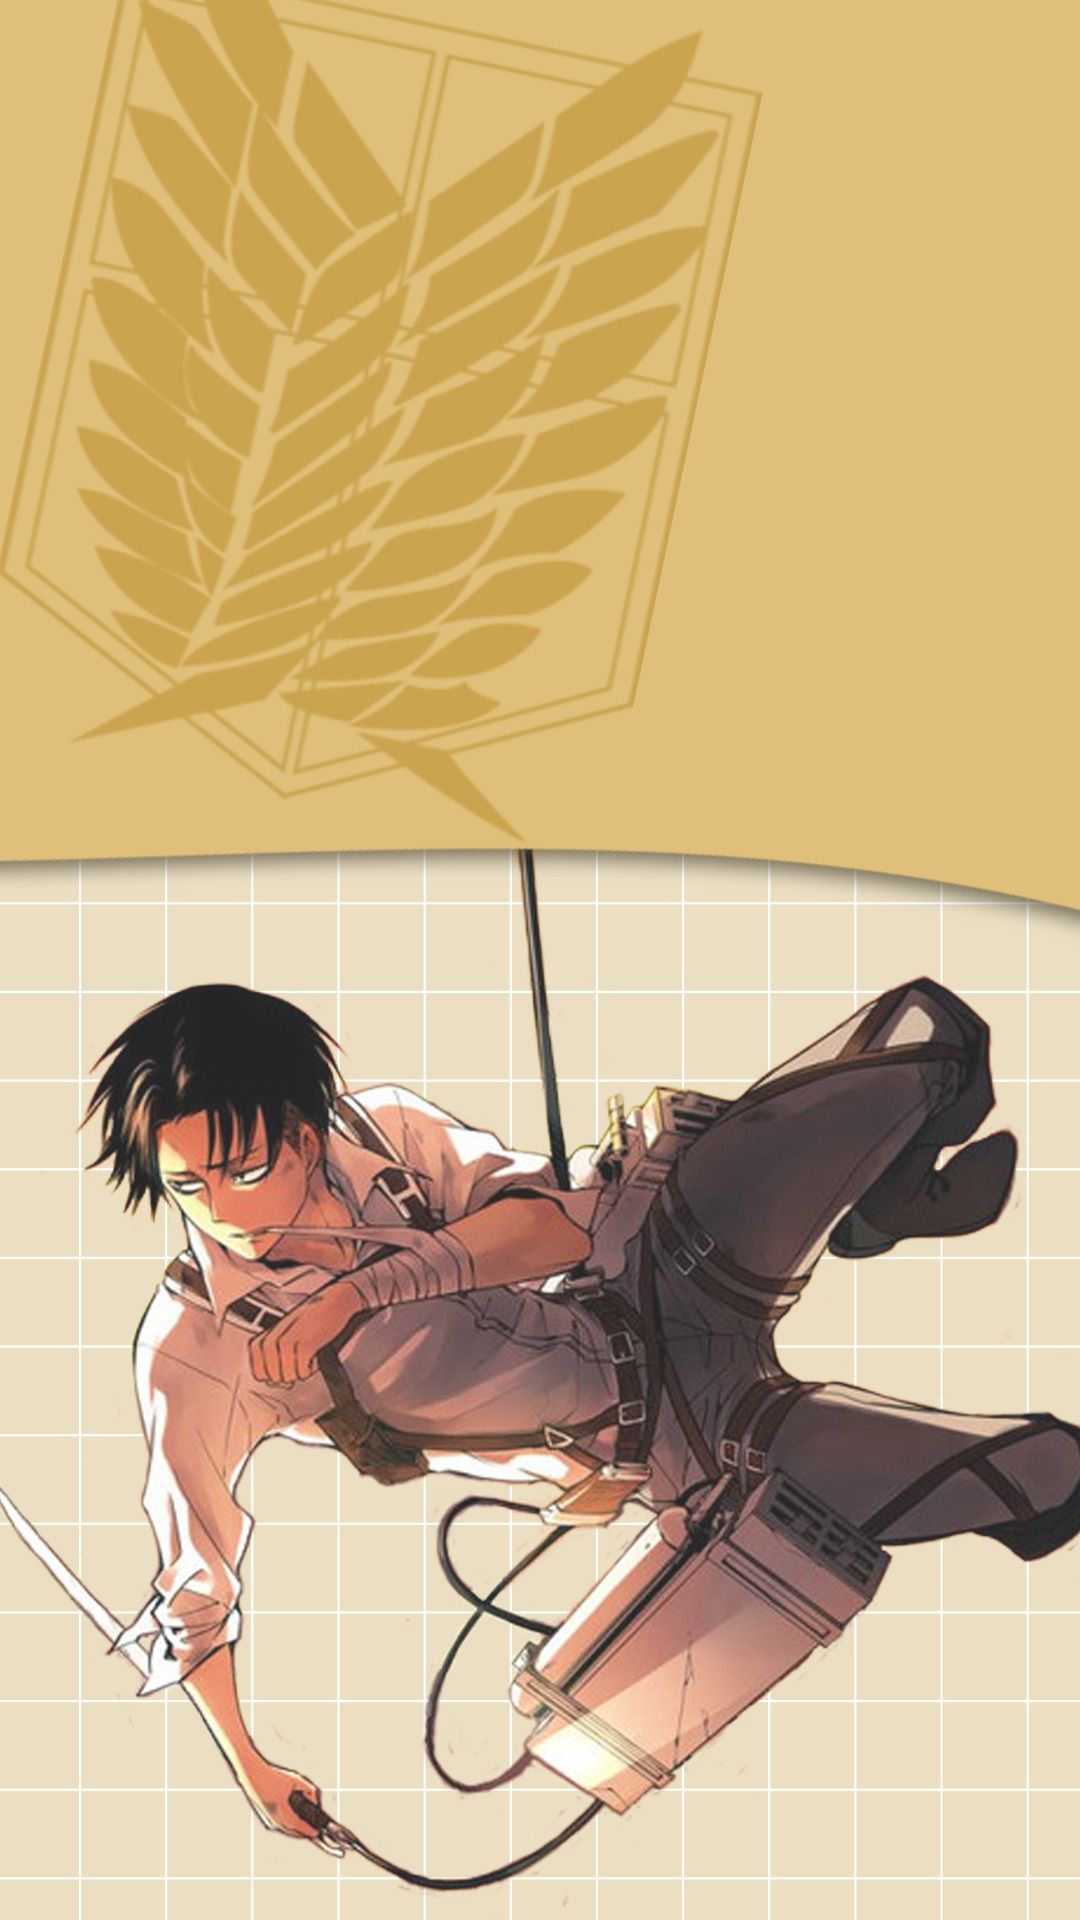 Wallpapers And Lockscreen Levi Ackerman Shingeki No Kyojin If You Attack On Titan Levi Attack On Titan Anime Attack On Titan Meme